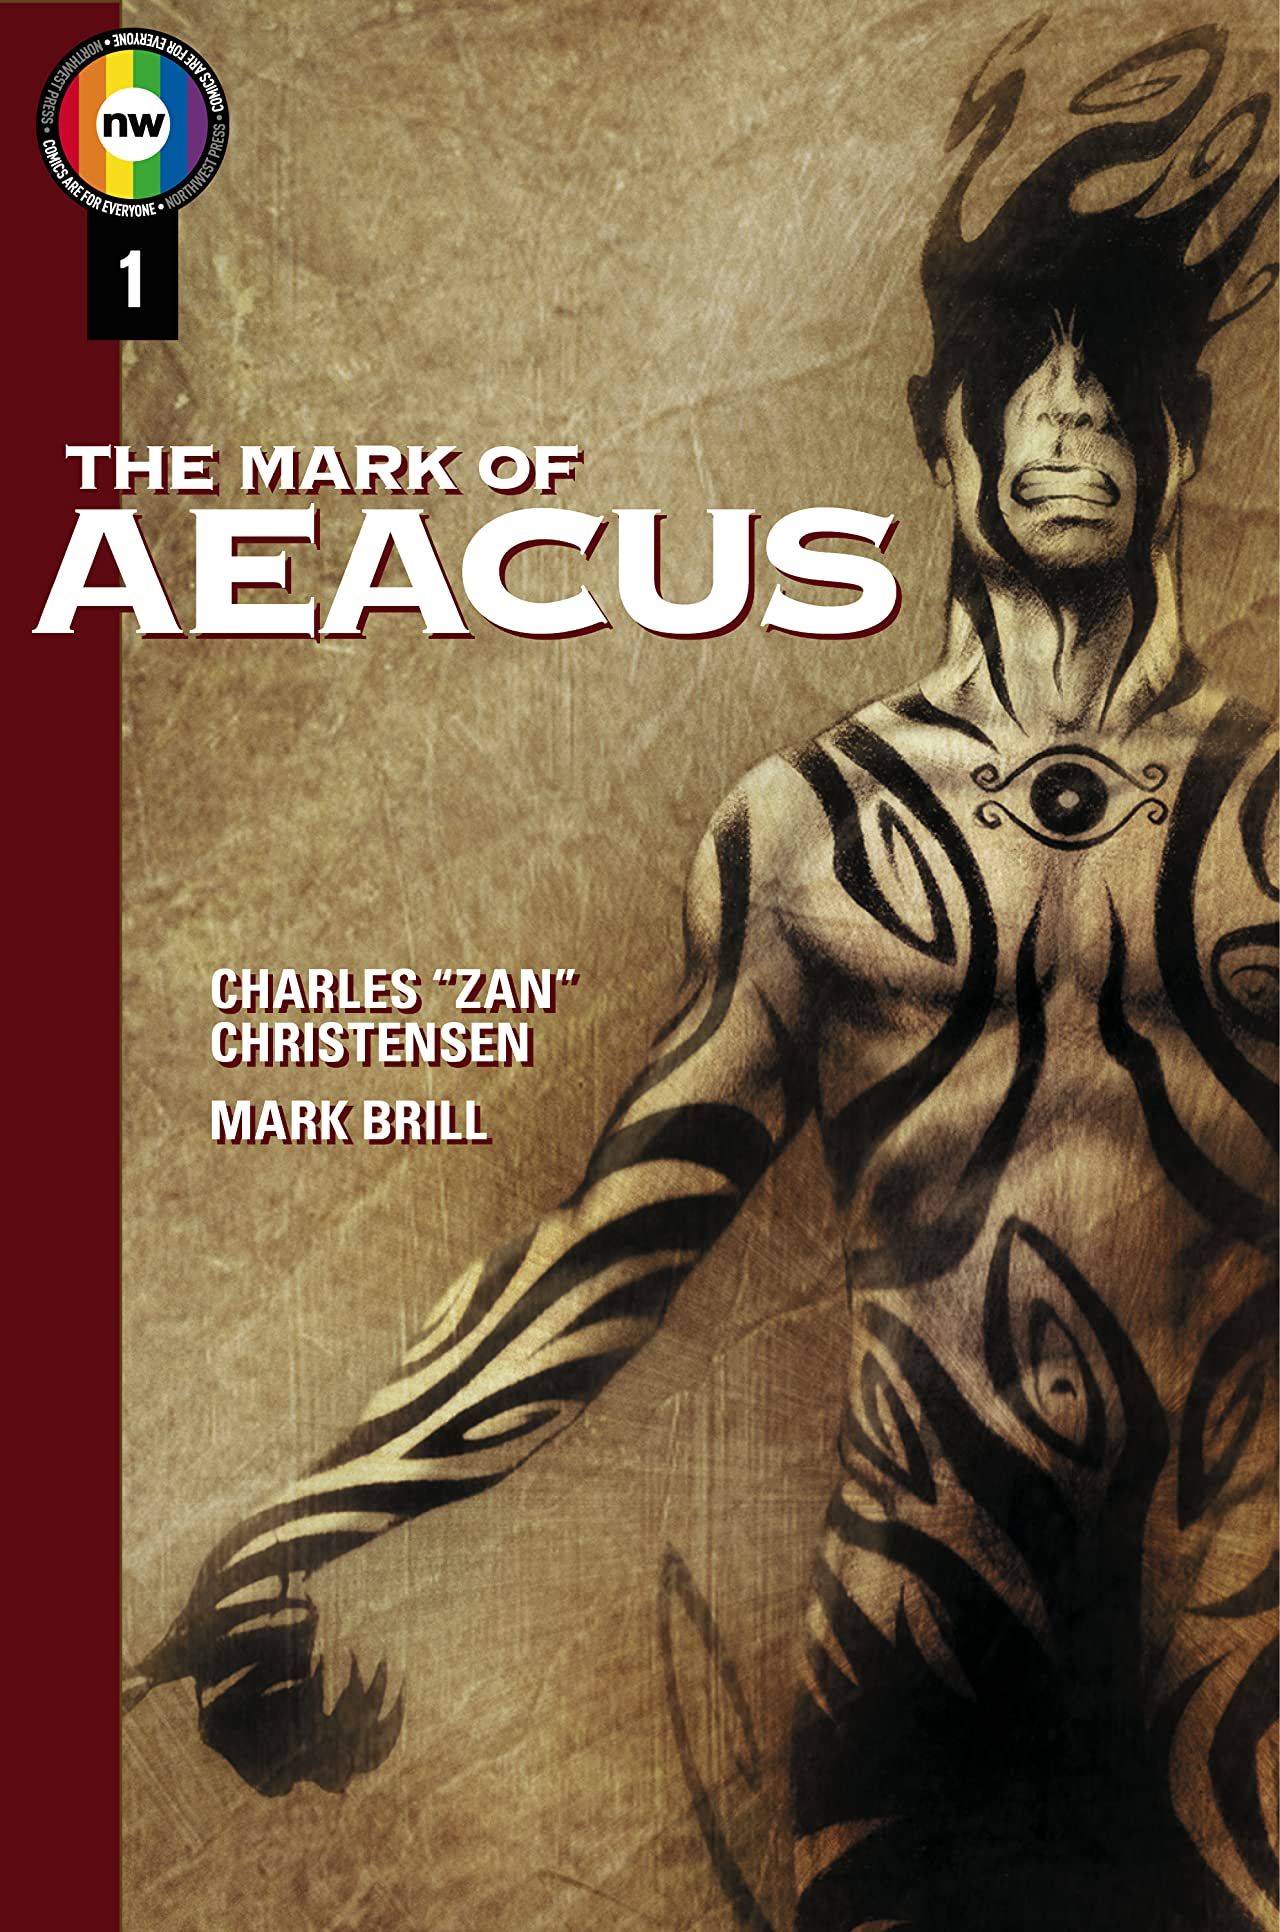 The Mark of Aeacus #1